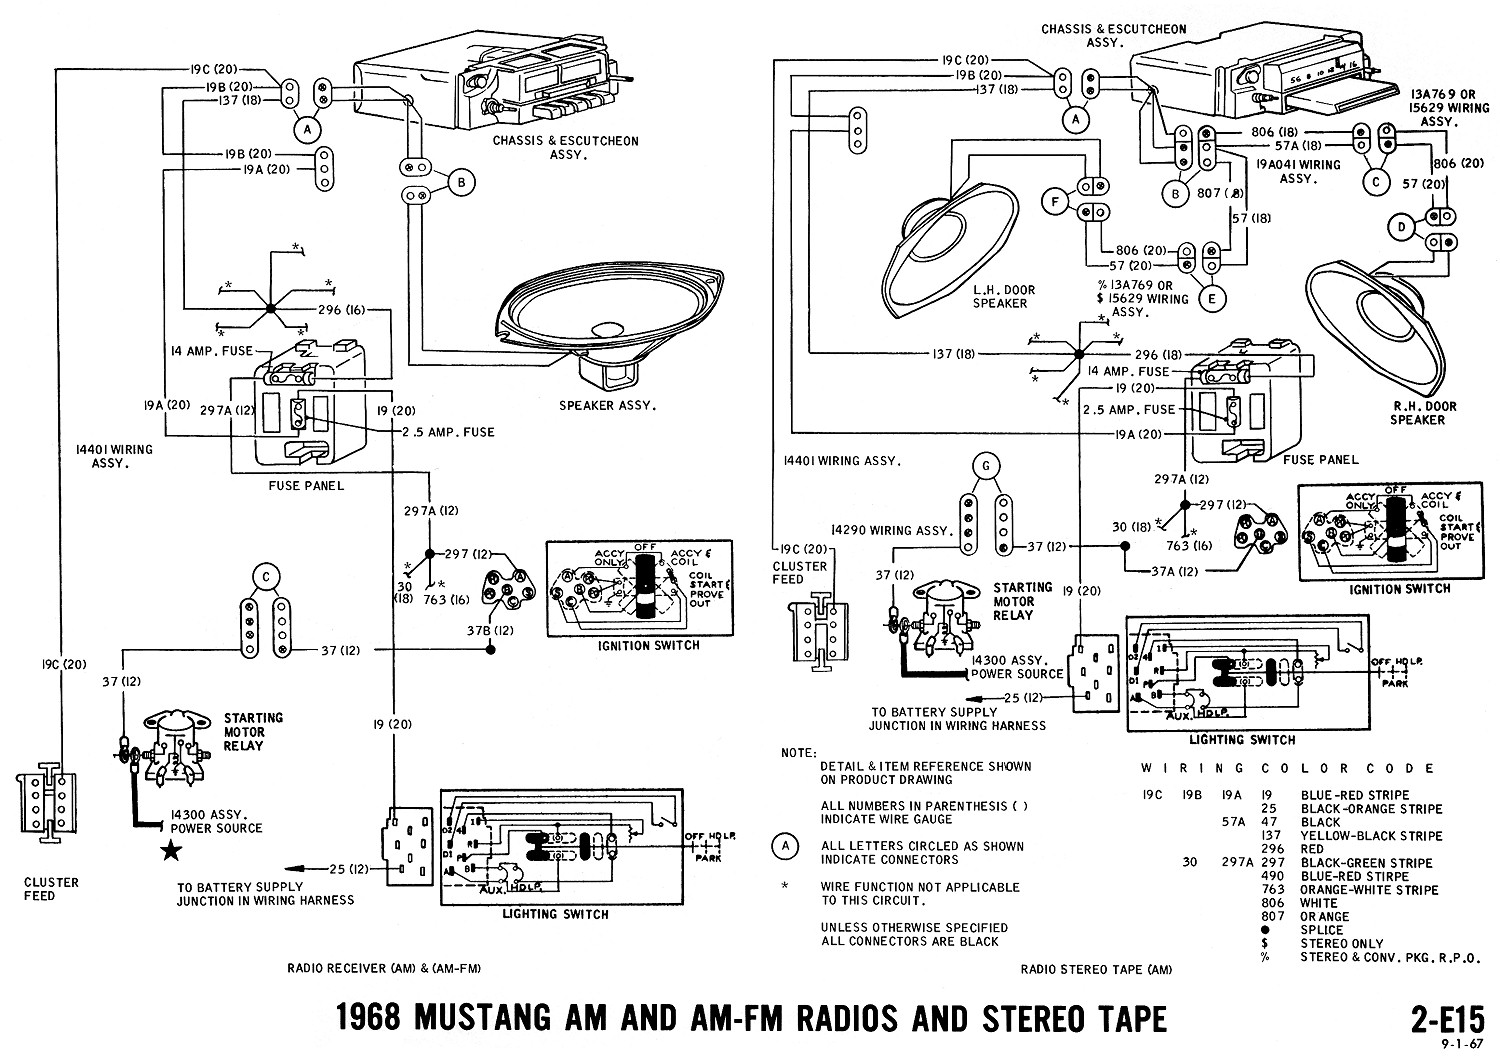 1968 Mustang Wiring Diagrams on 94 Mustang Gt Fuse Box Diagram